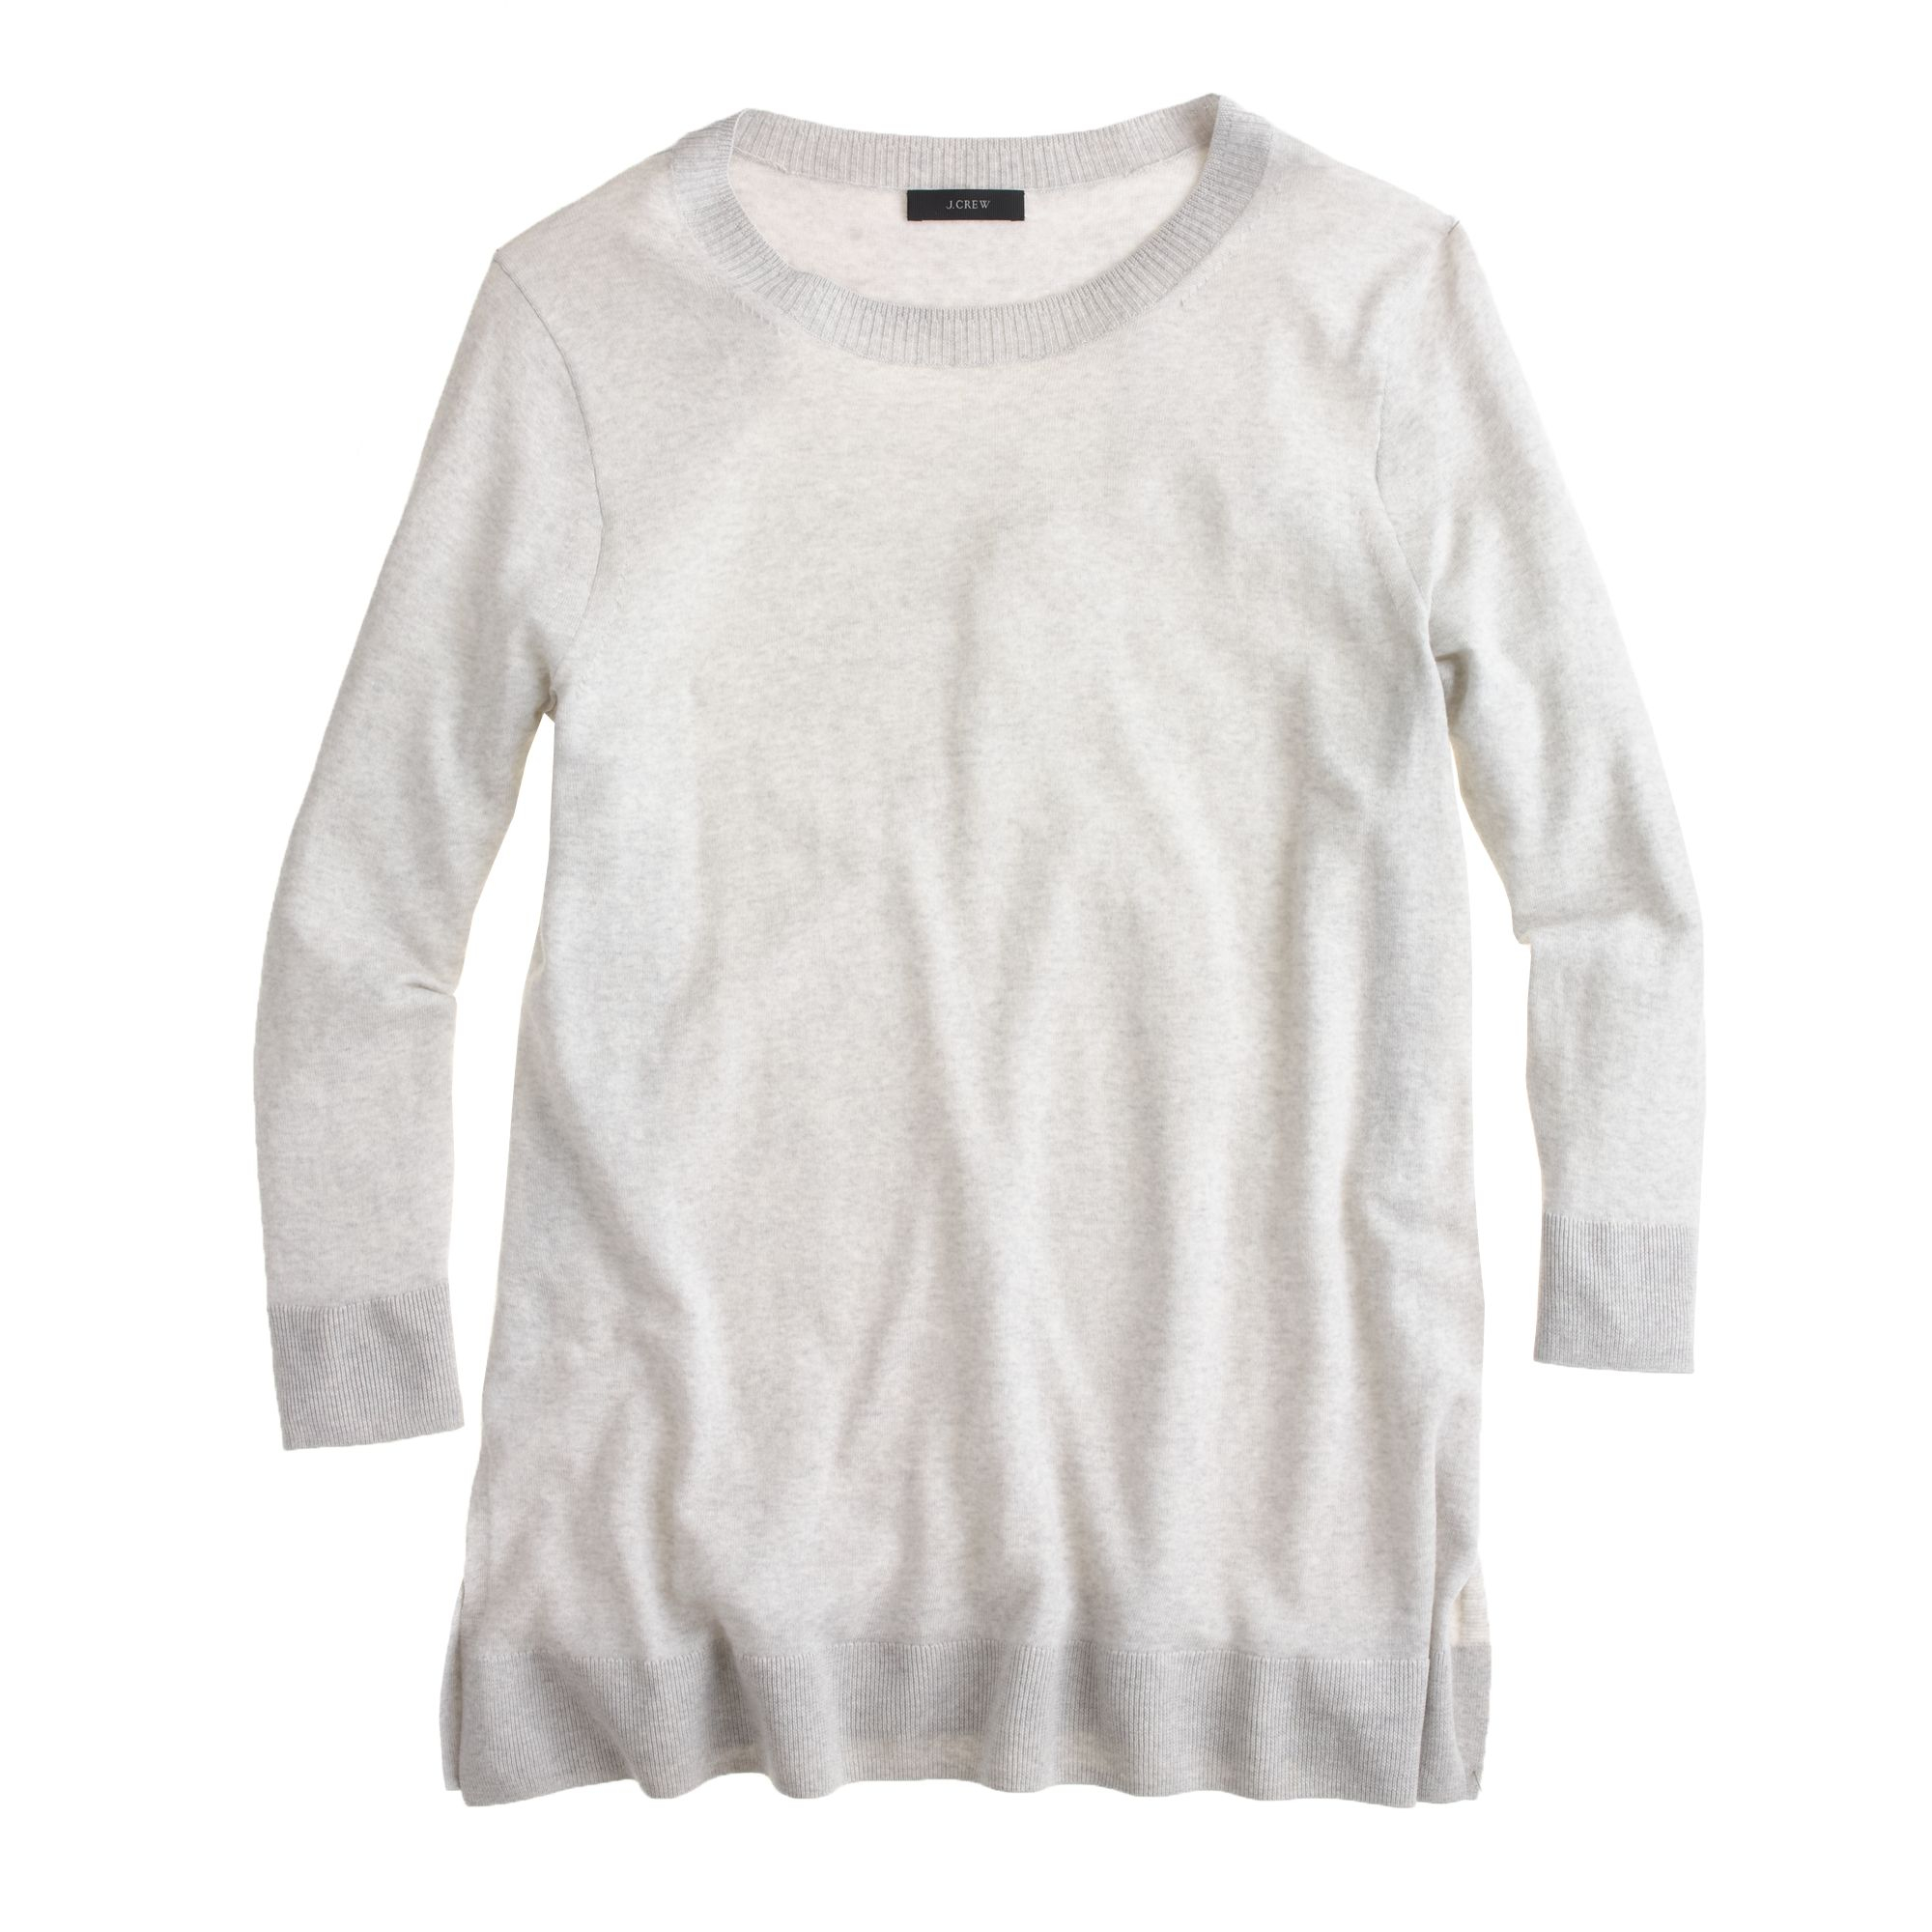 J.crew Lightweight Merino Tunic Sweater in White | Lyst